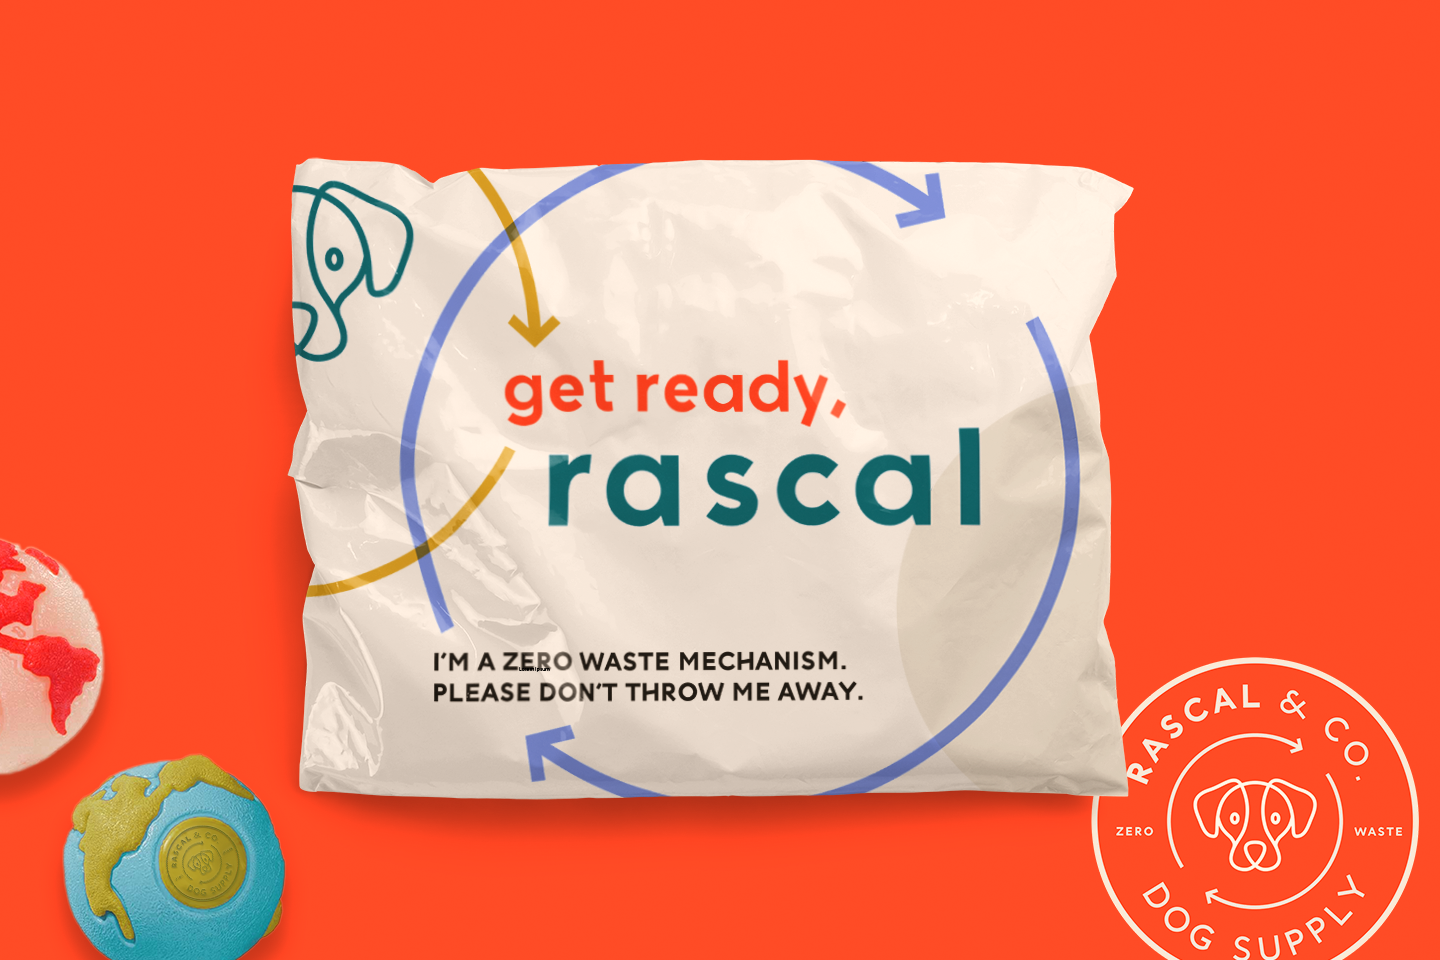 Rascal & Co. delivers high-quality dog toys from organic, recycled materials at a fair value. Instead of being designed to be destroyed, Rascal's toys are designed to be renewed again and again.